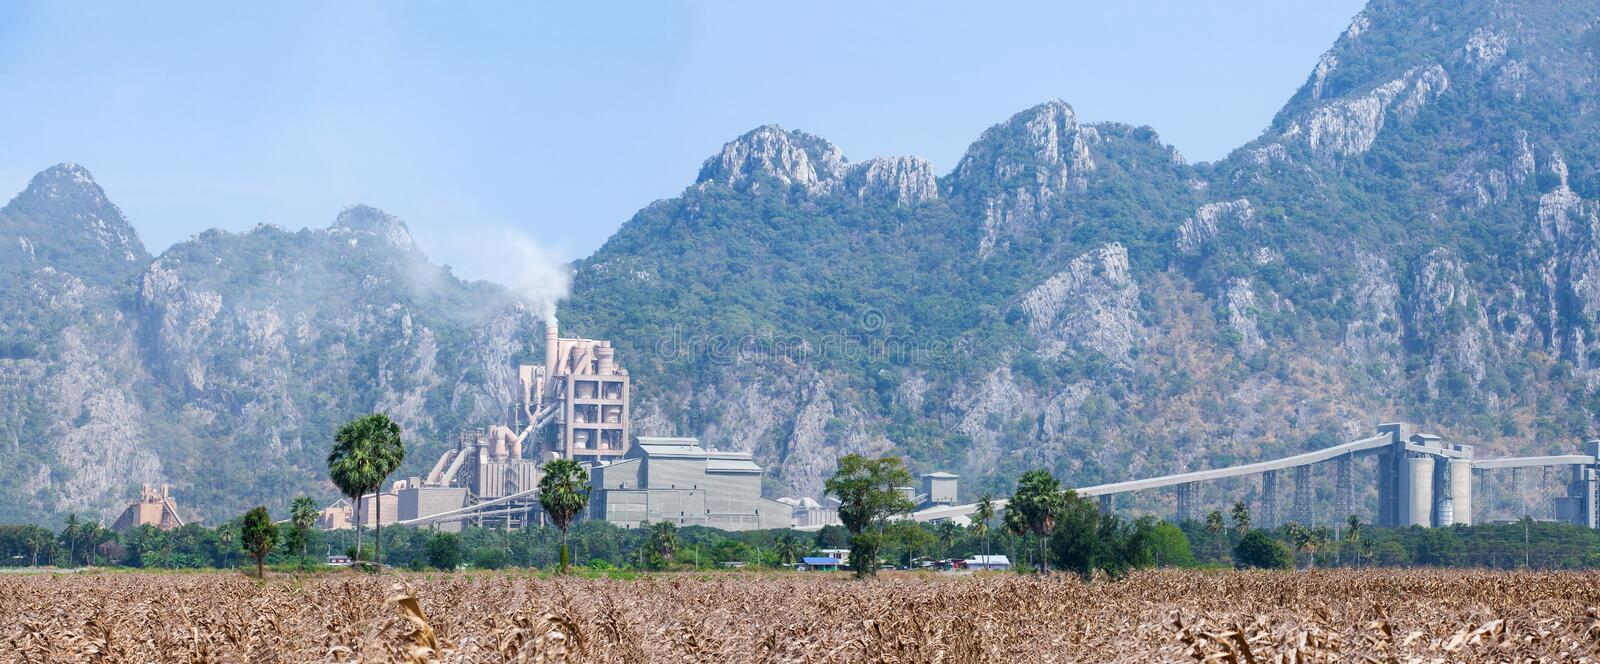 Panorama landscape of cement factory in thailand, corn fields foregrounds, limestone mountain range backgrounds royalty free stock photography